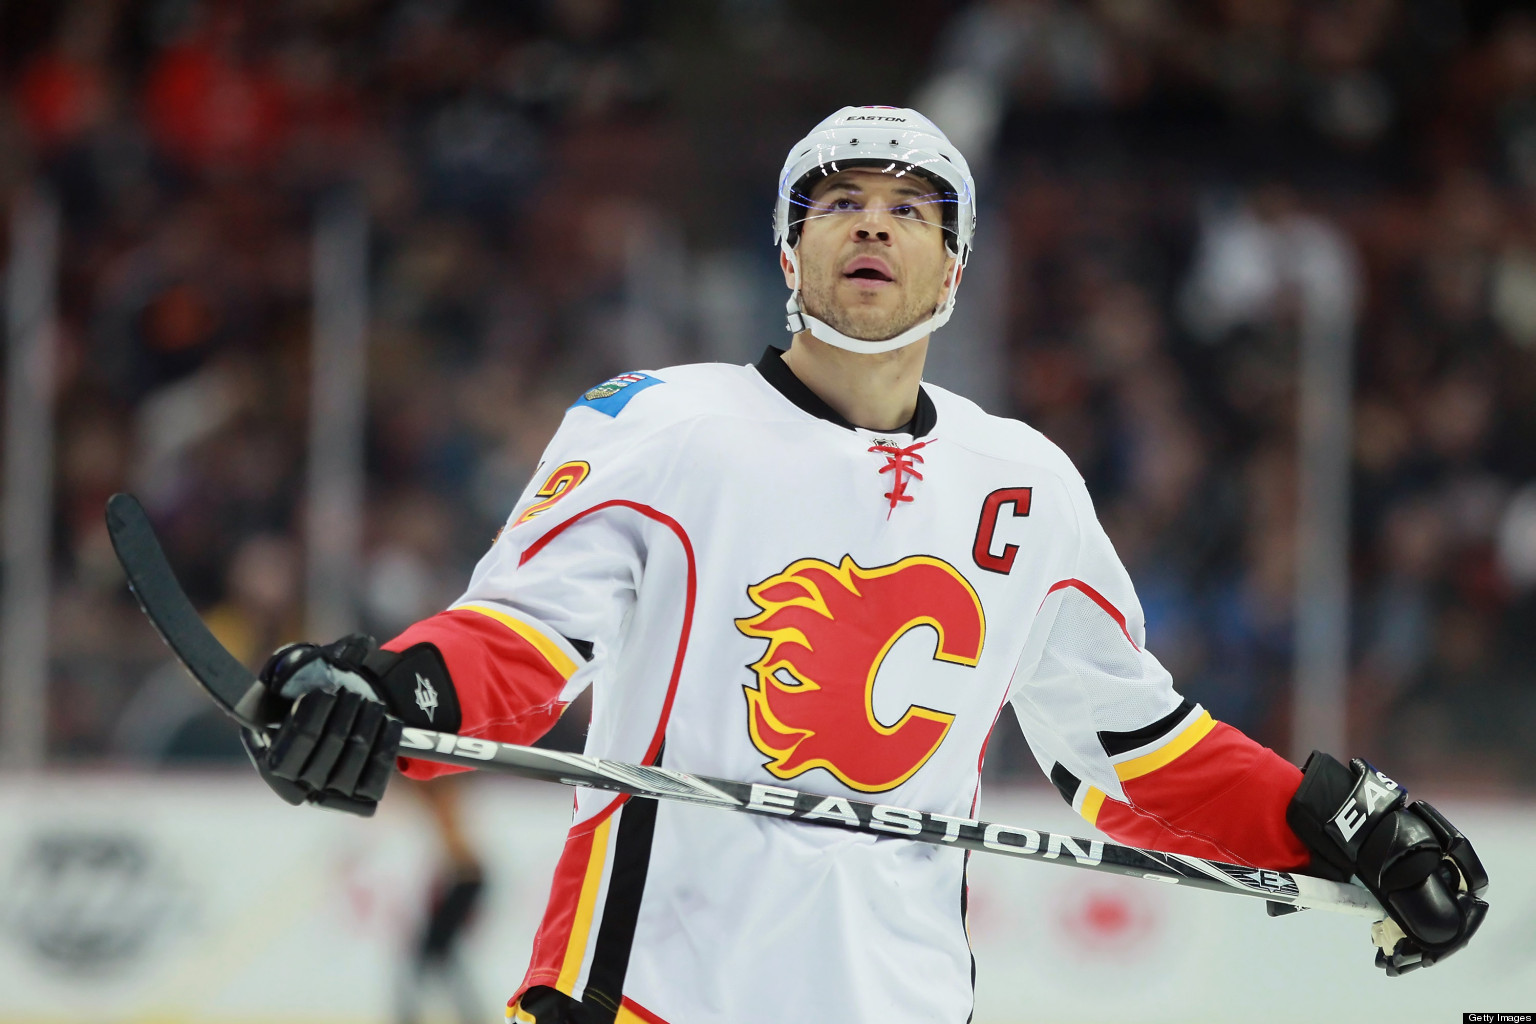 When Jarome Iginla led the NHL in scoring in the 2001-02 season, I thought it would be the perfect hook to get more of family to watch hockey.